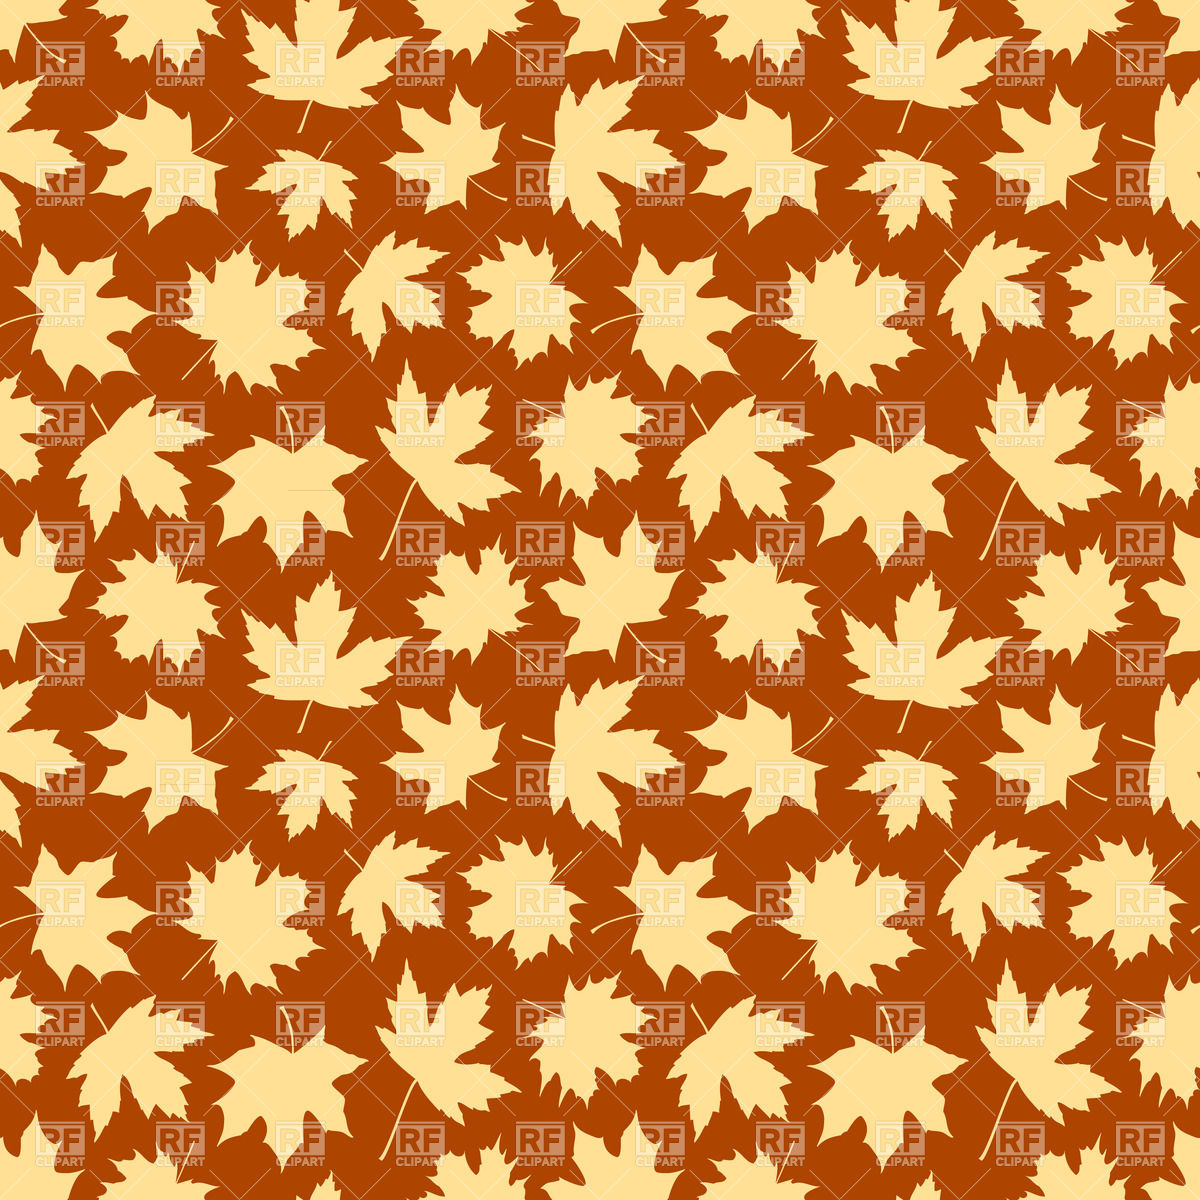 1200x1200 Seamless Background Made Of Silhouettes Of Autumn Maple Leaves